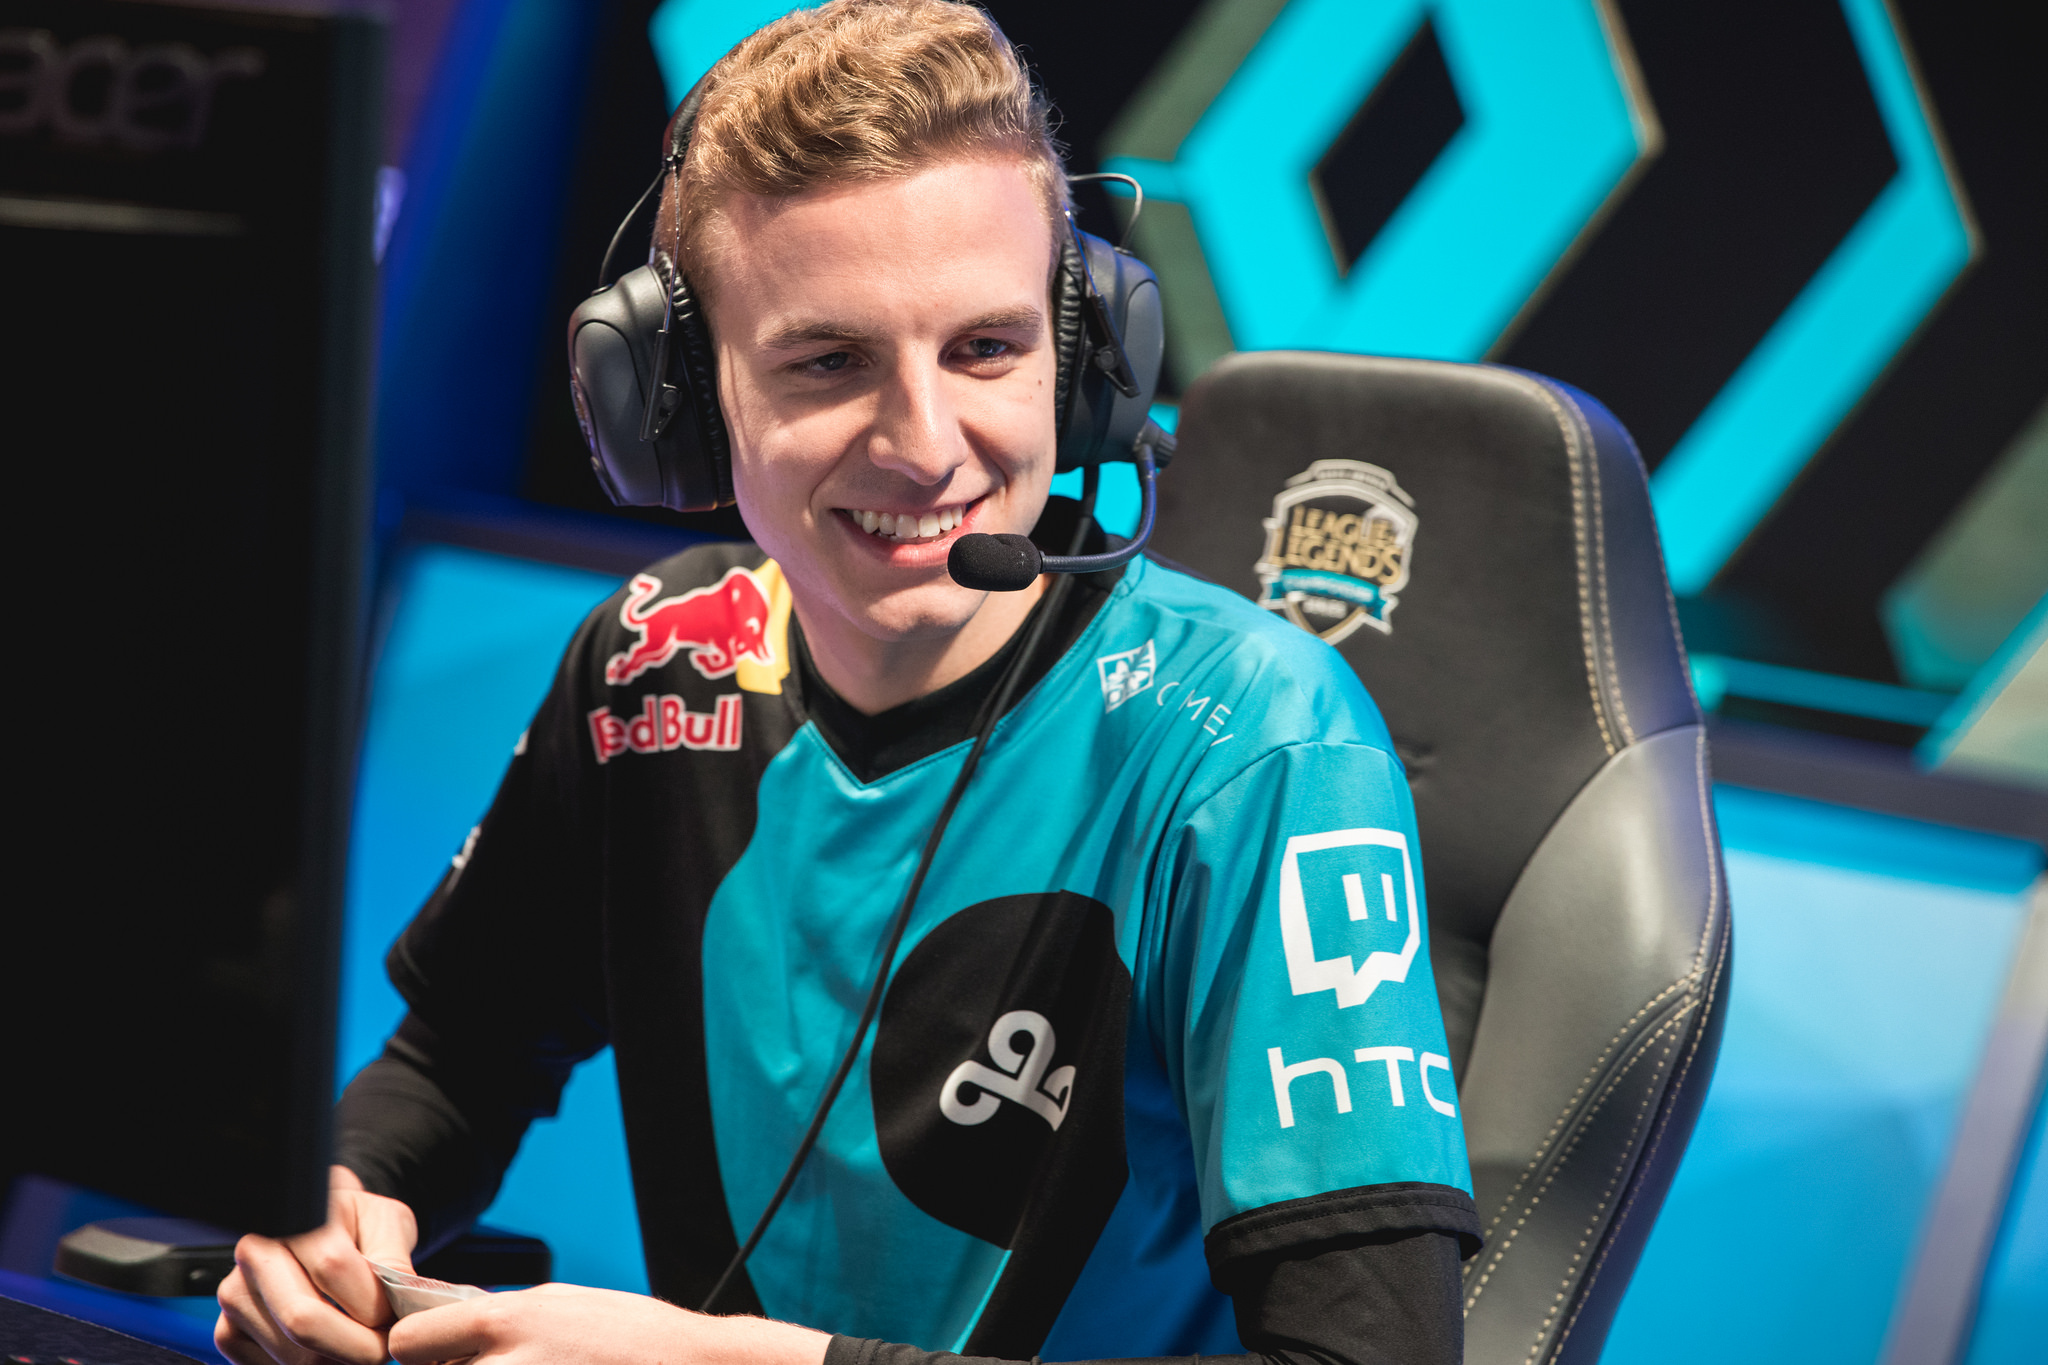 Cloud9 Advance To The Na Lcs Finals After Defeating Tsm In A 5 Game